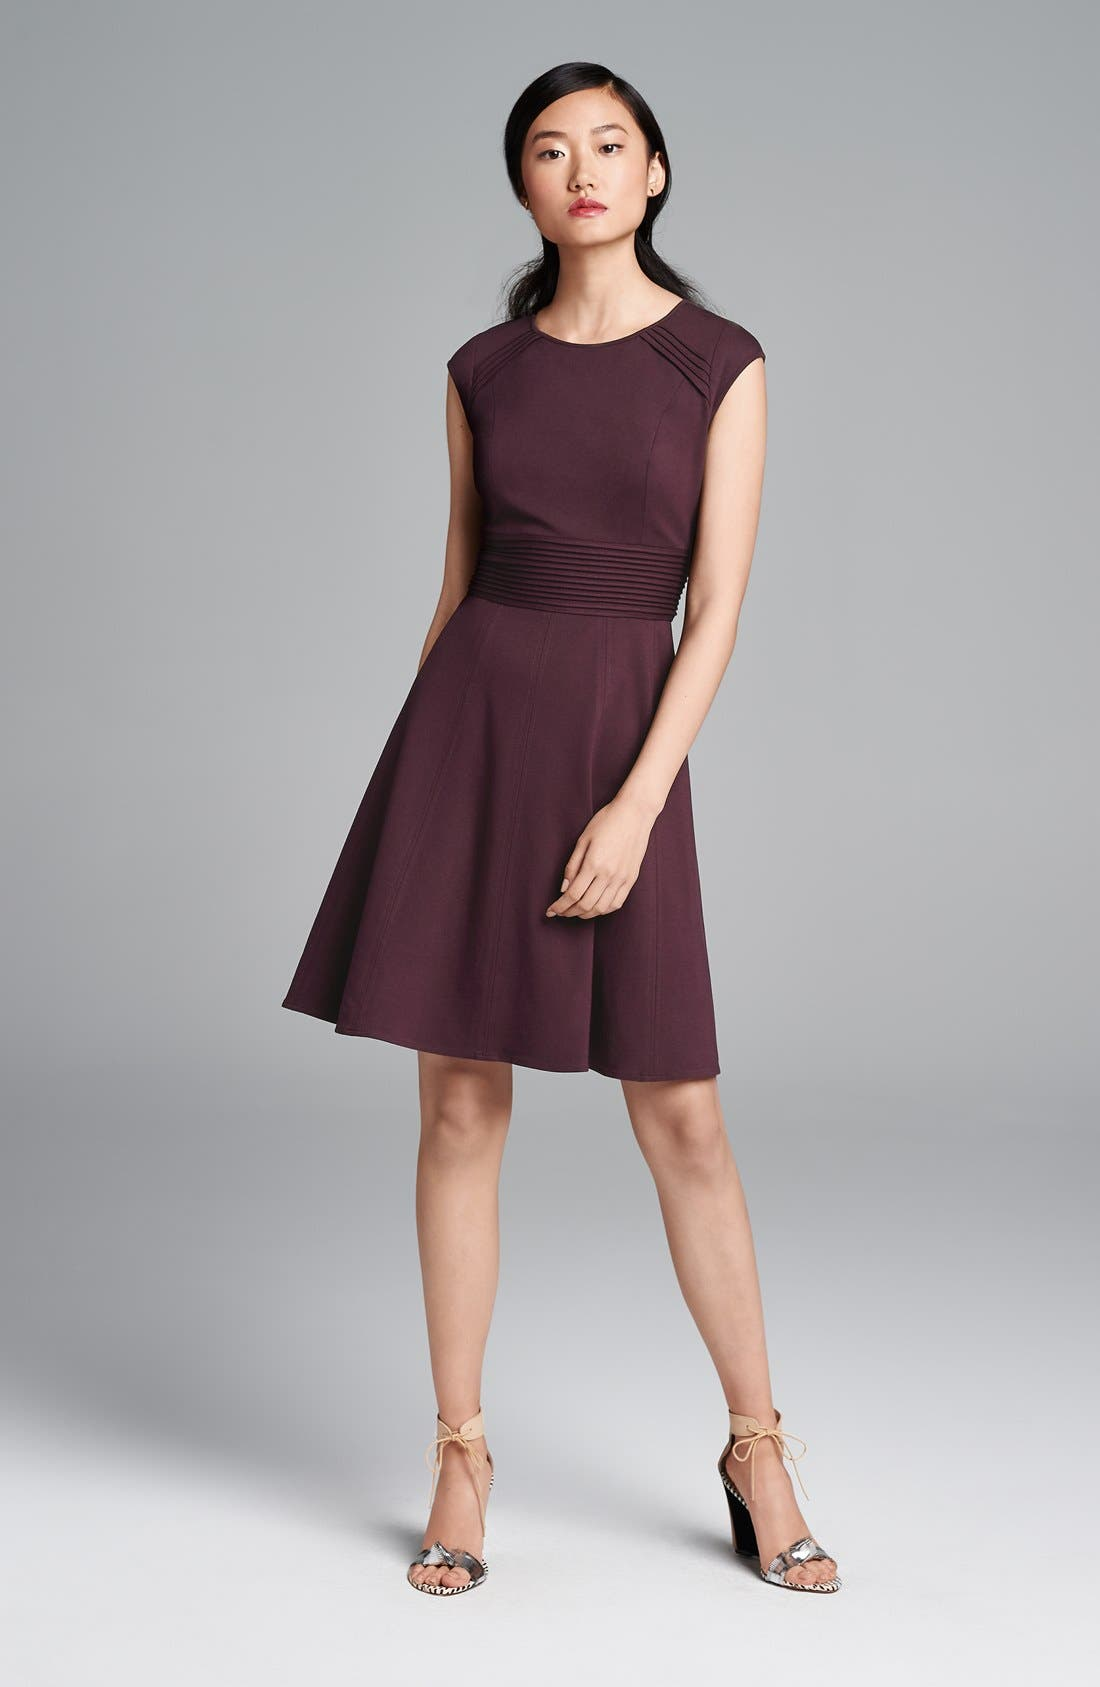 Pintucked Waist Seamed Ponte Knit Fit & Flare Dress, Main, color, 950